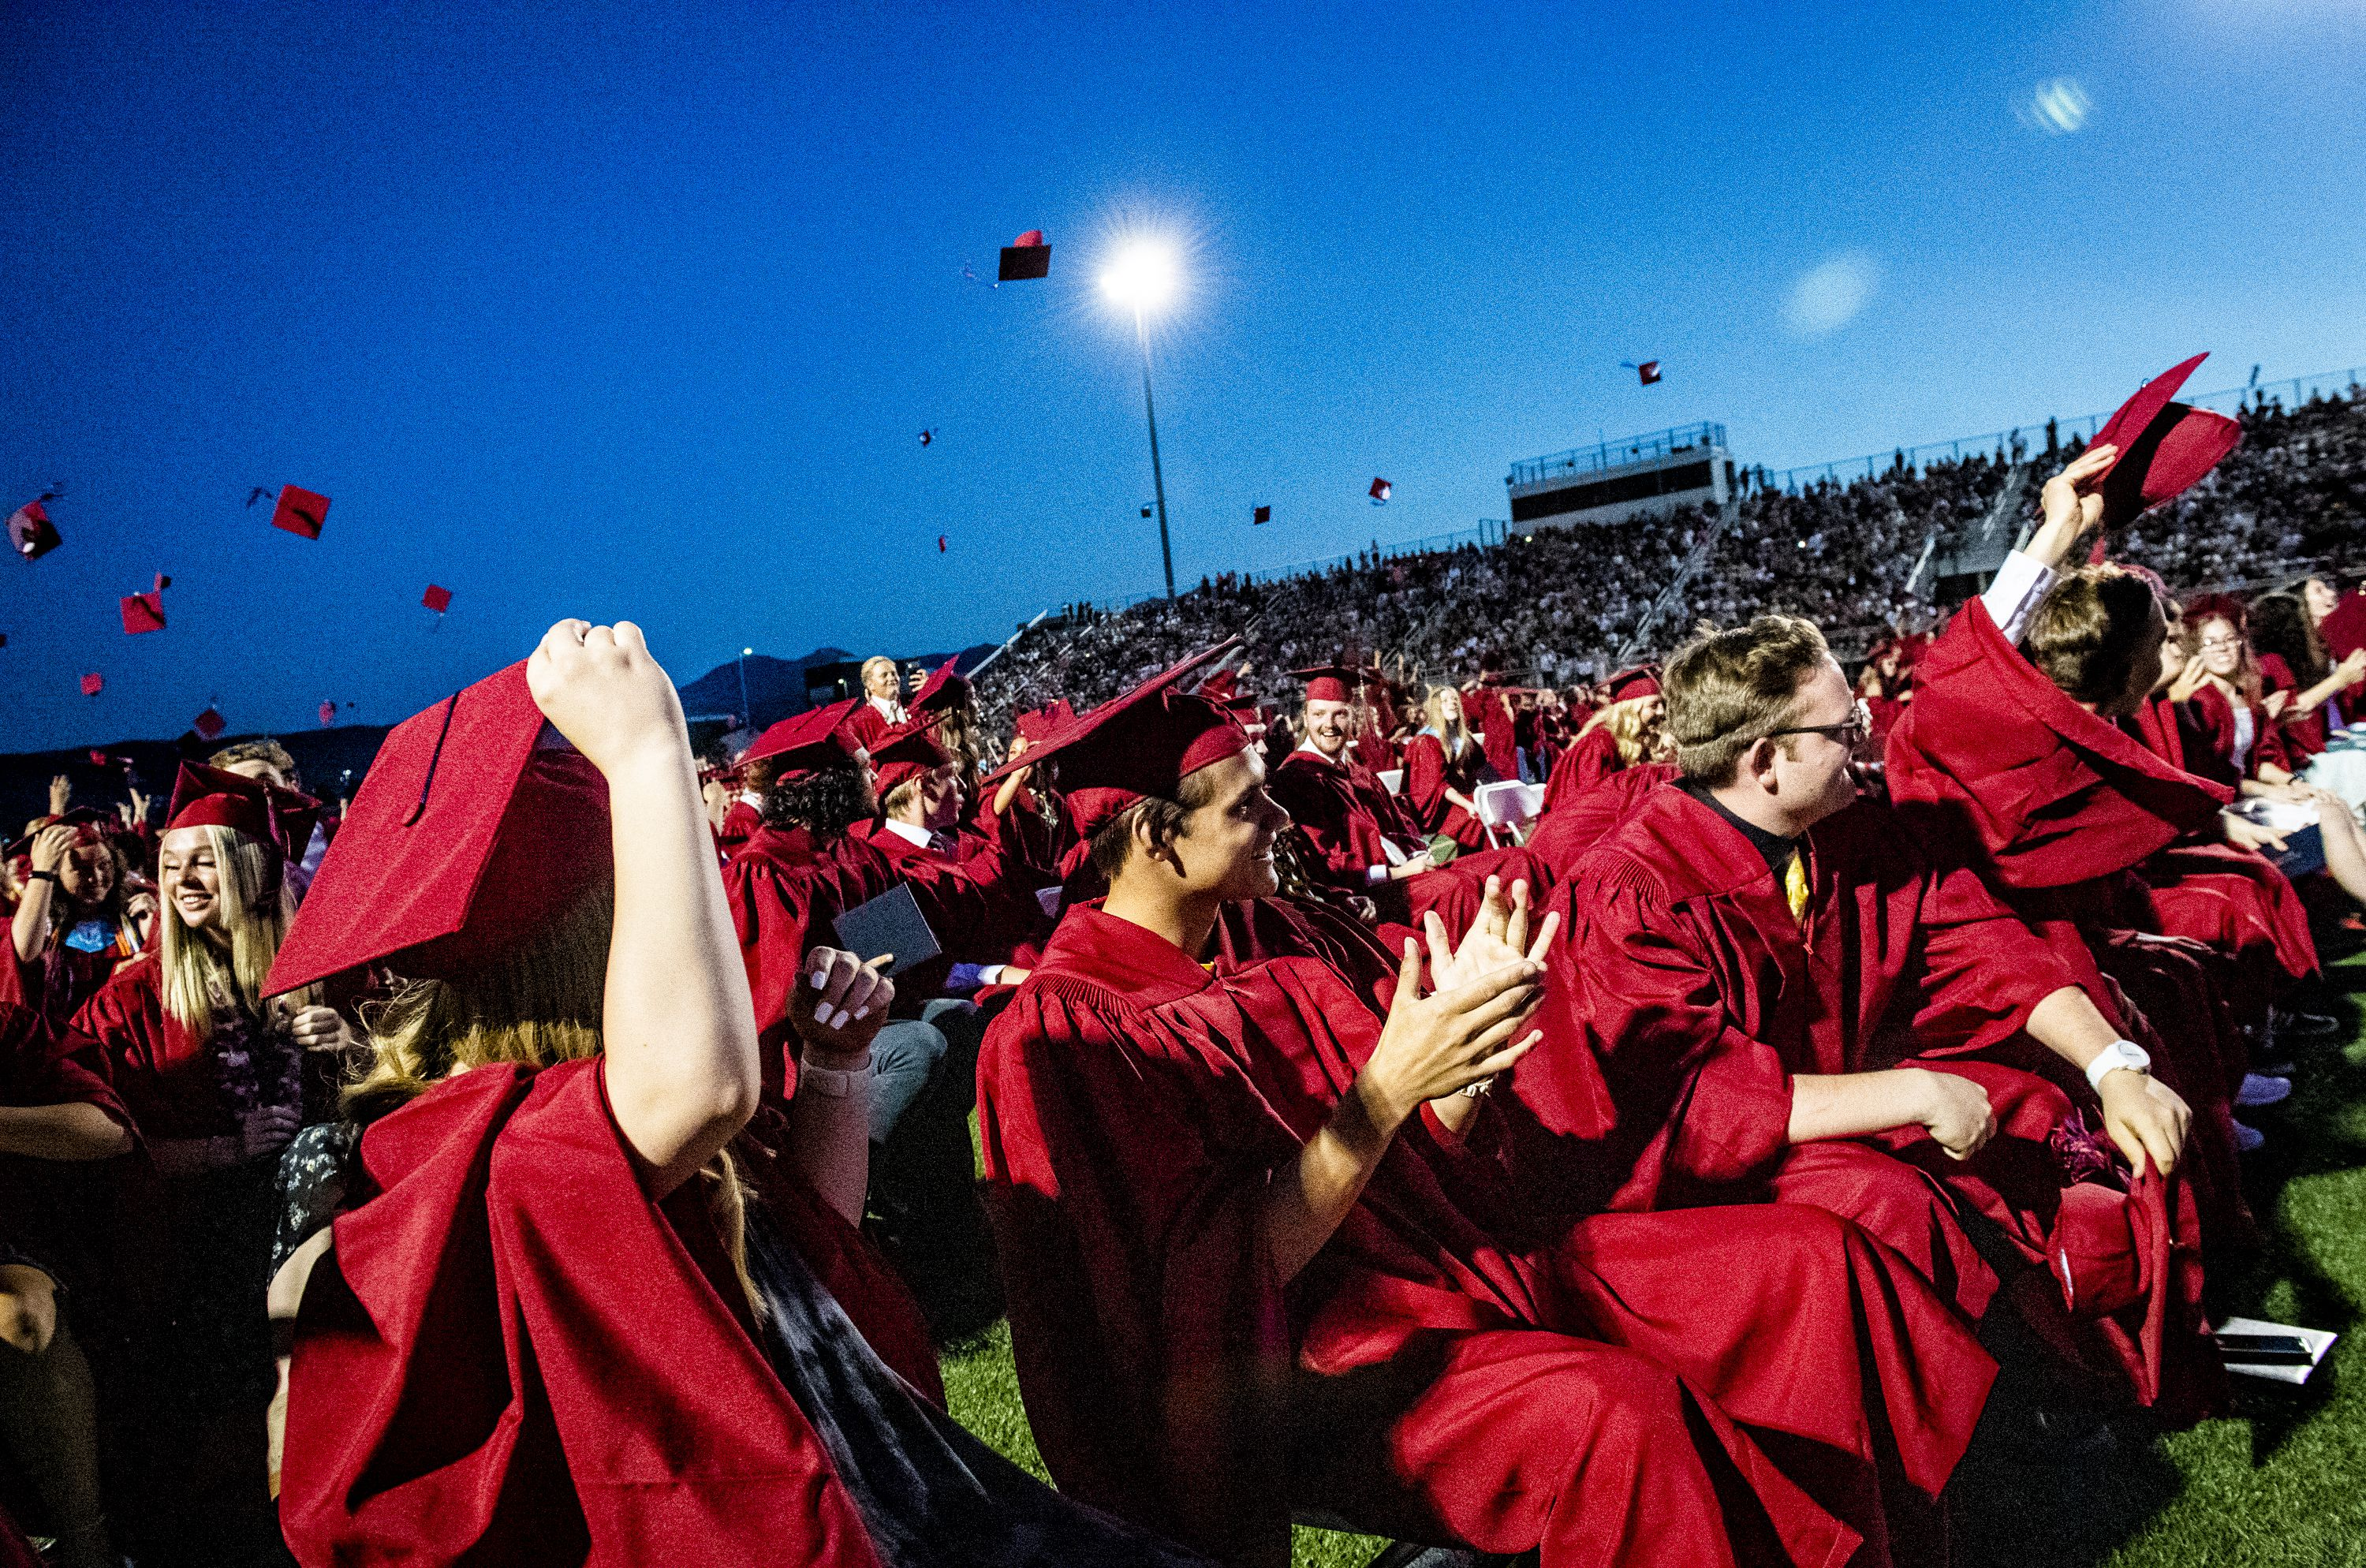 (Isaac Hale | Special to The Tribune) Graduates applaud and throw their caps into the air at the end of Herriman High School's graduation ceremony held Thursday, June 3, 2021.